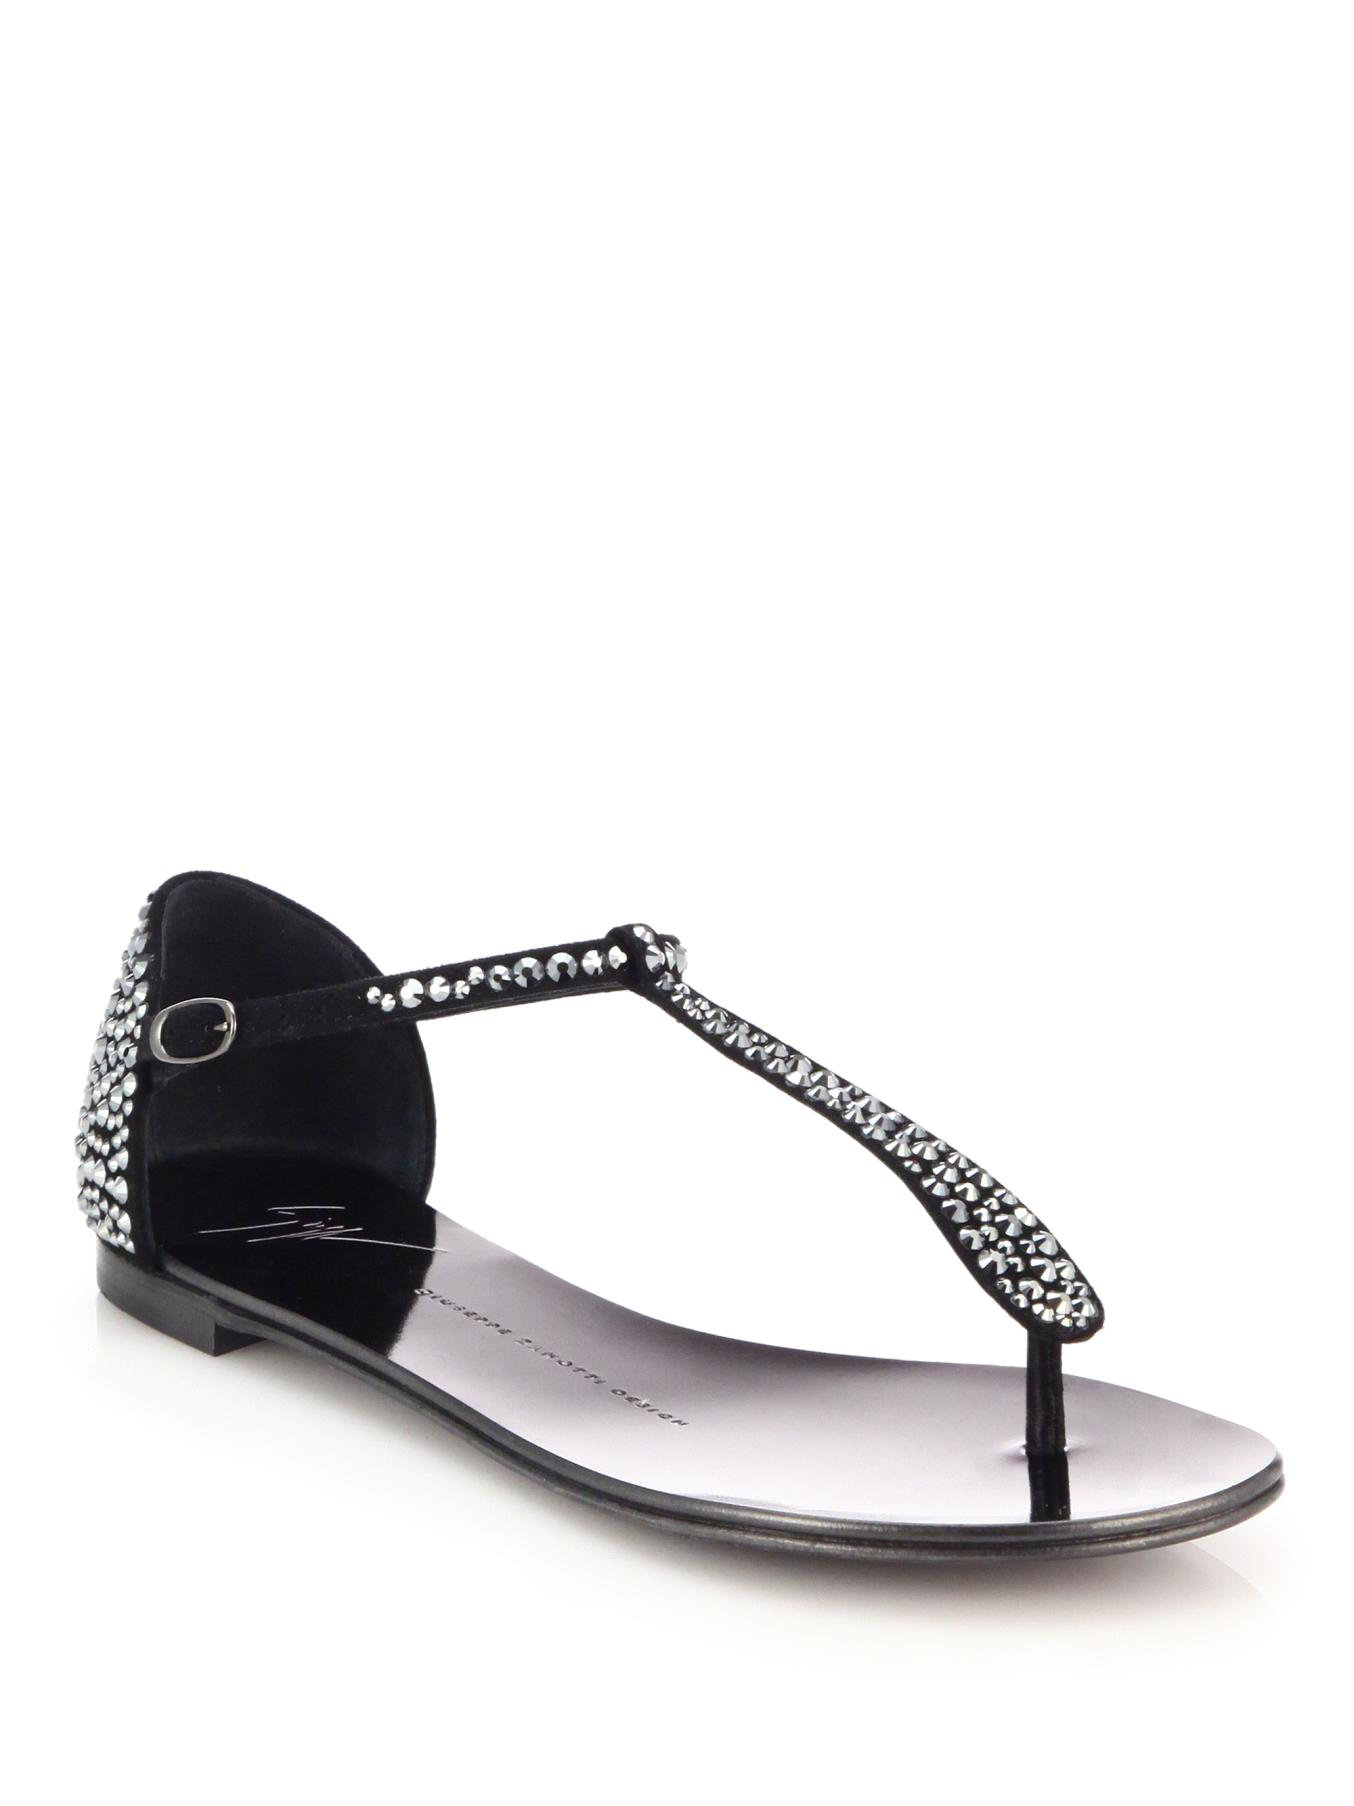 Giuseppe Zanotti Crystal Studded Suede Thong Sandals In